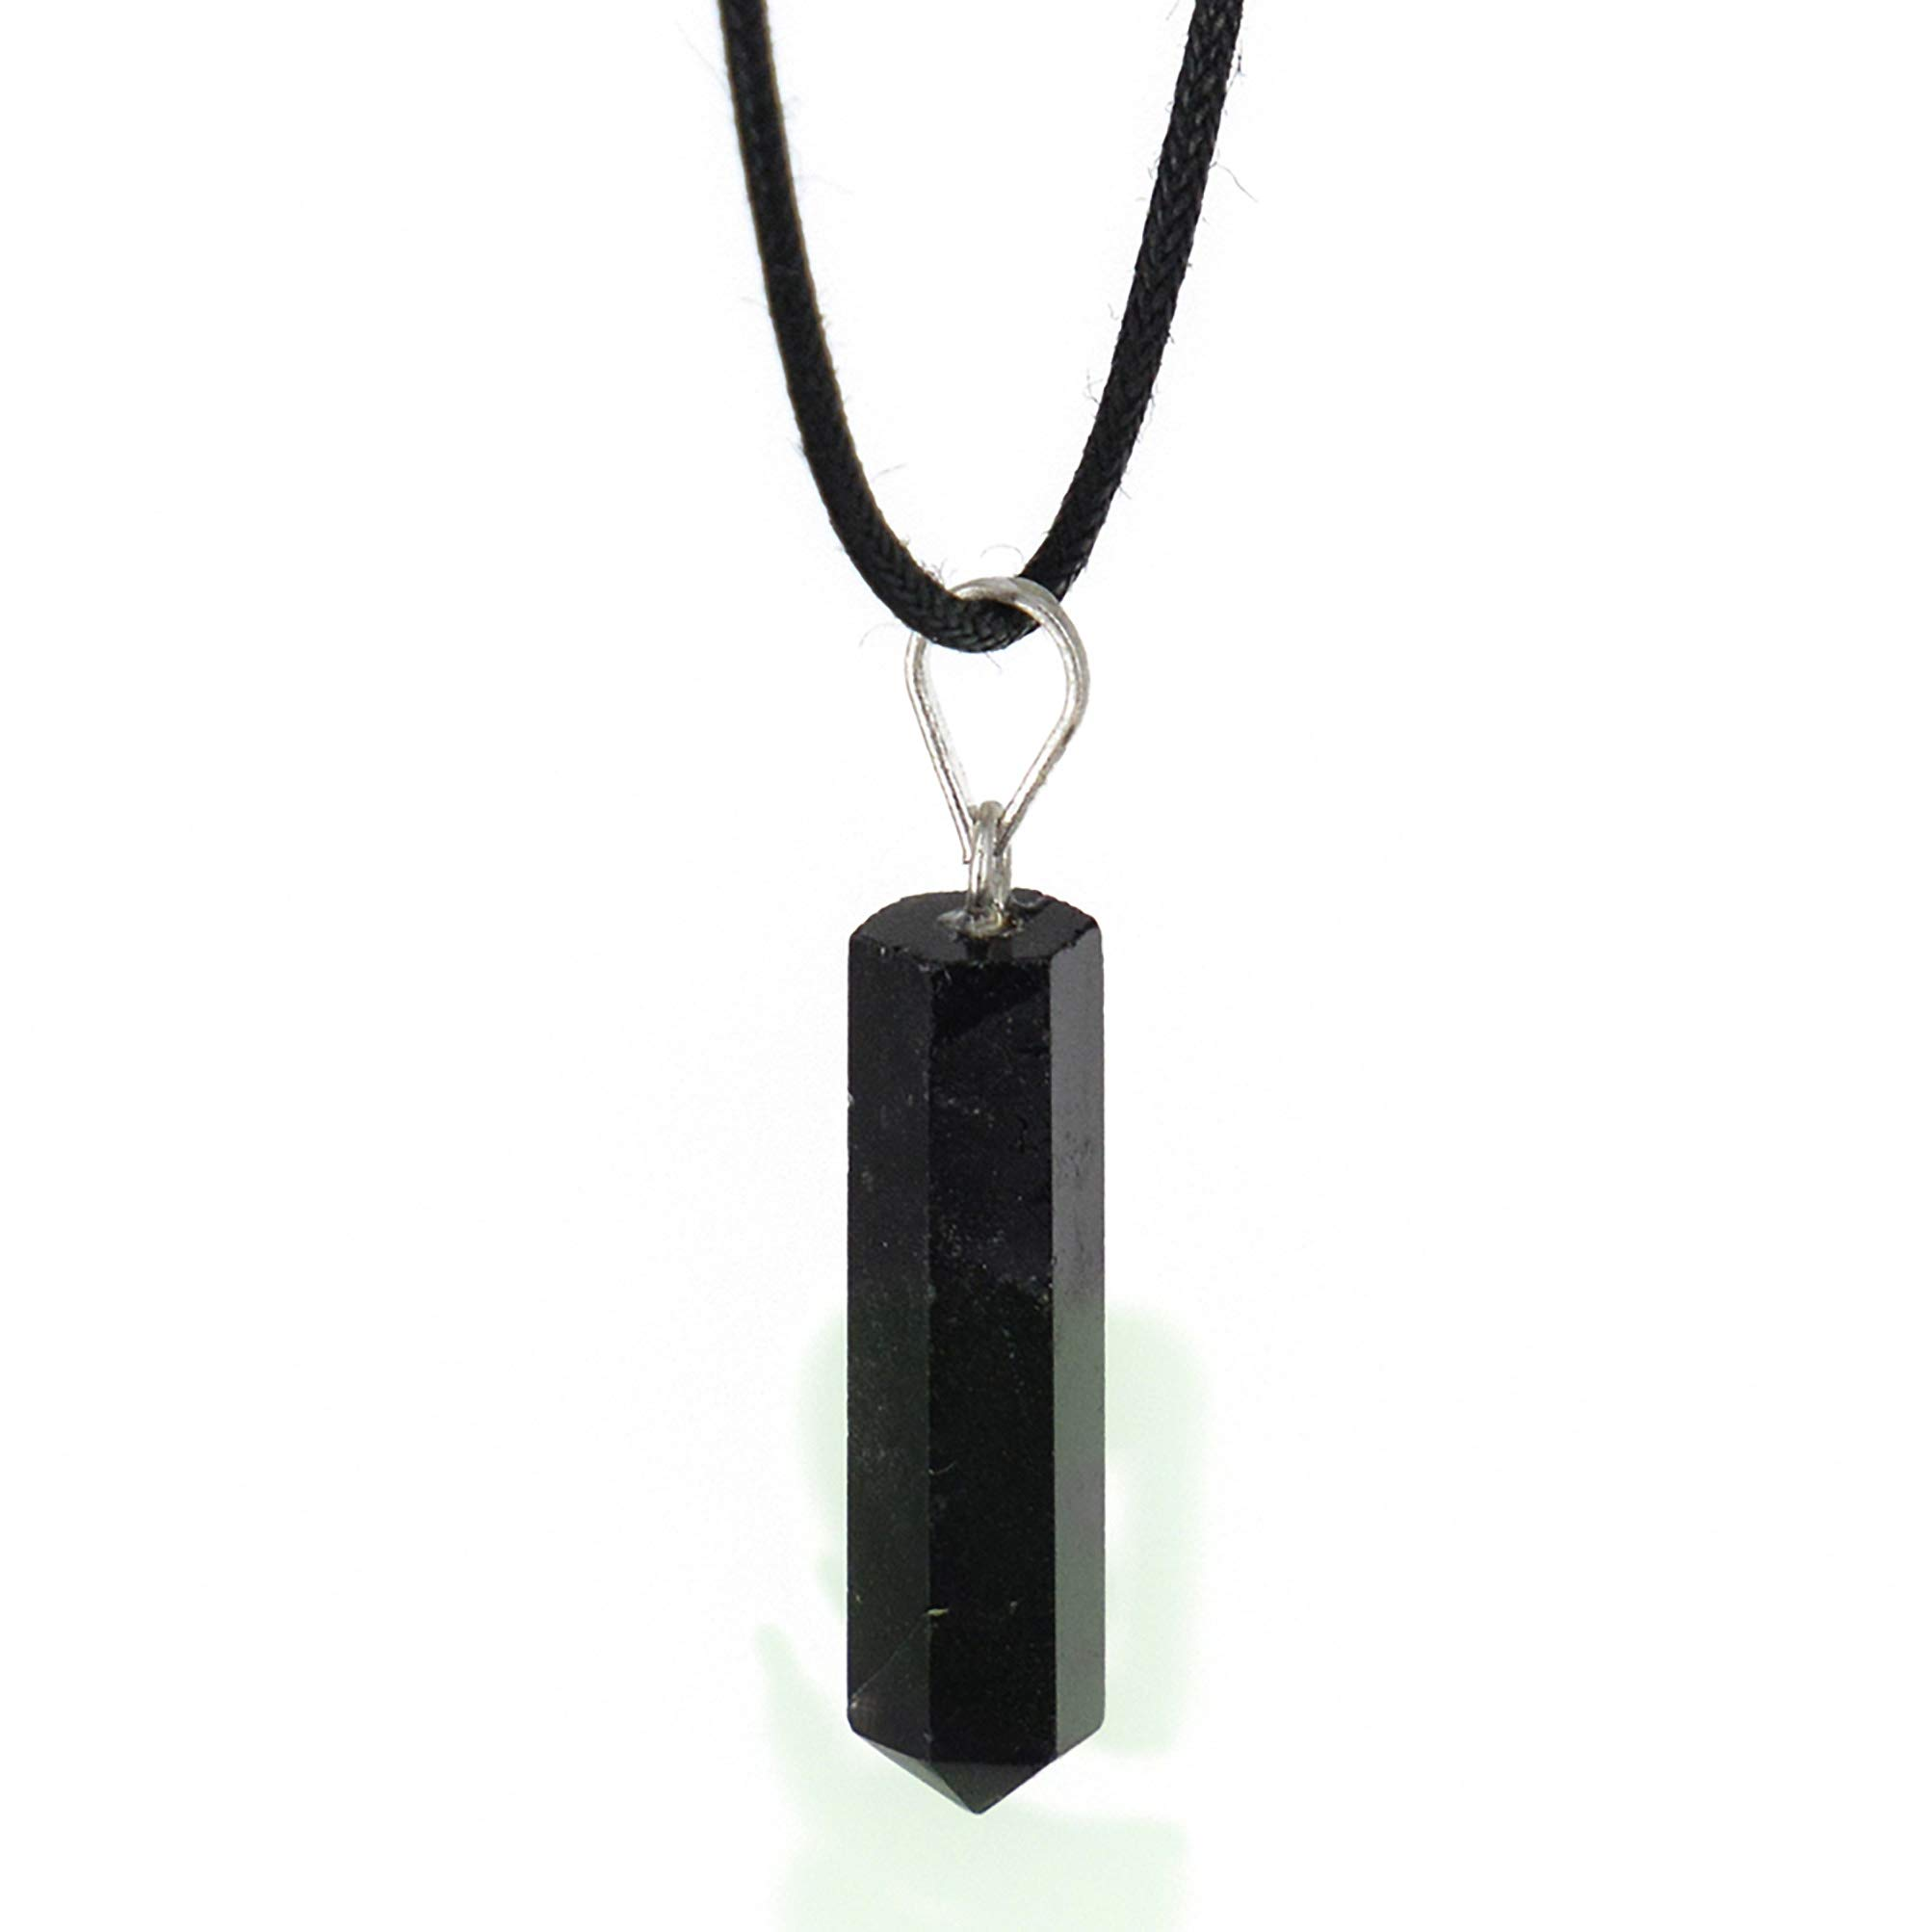 69701a788d4fe Obsidian Pendant Necklace - Natural Black Stone Jewelry for Men ...